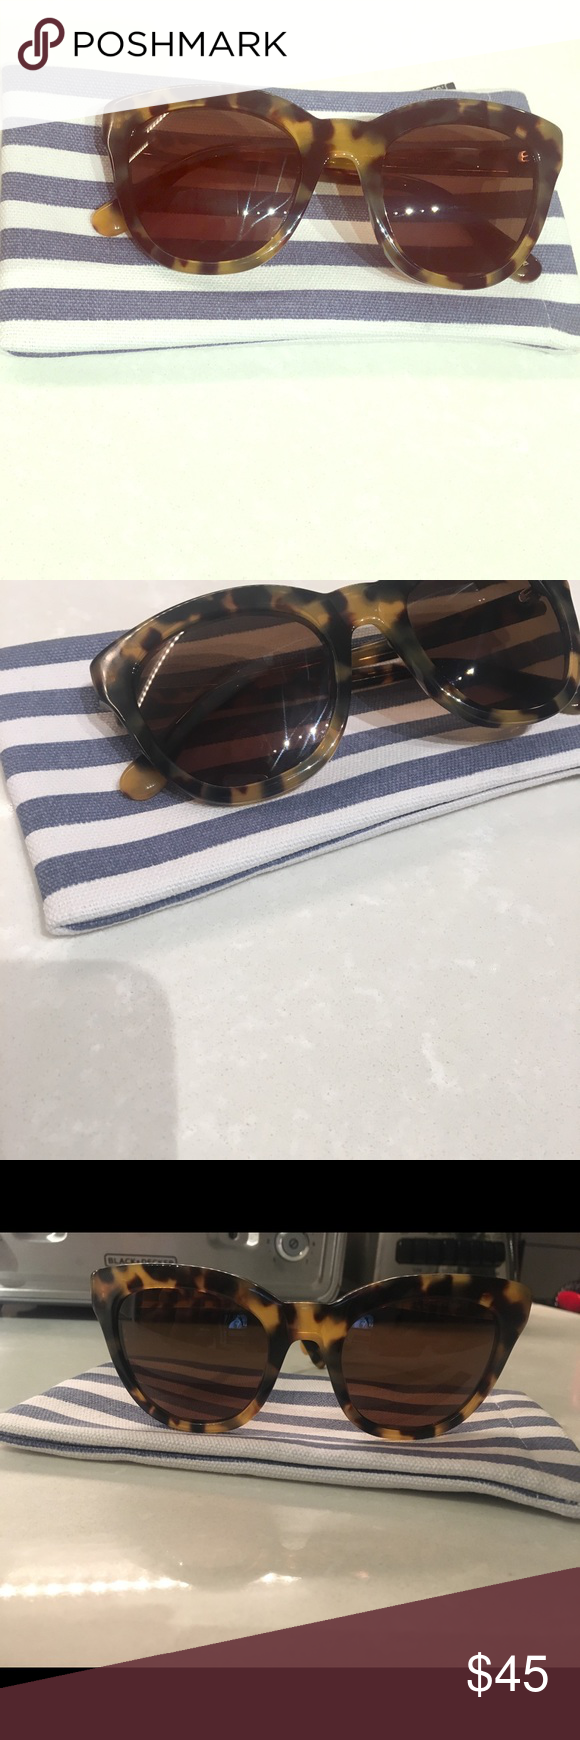 900693fb46 Jcrew Cabana Oversized sunglasses Brand new adorable J. Crew caramel tort Cabana  sunglasses. Comes with nautical blue and white stripe case.